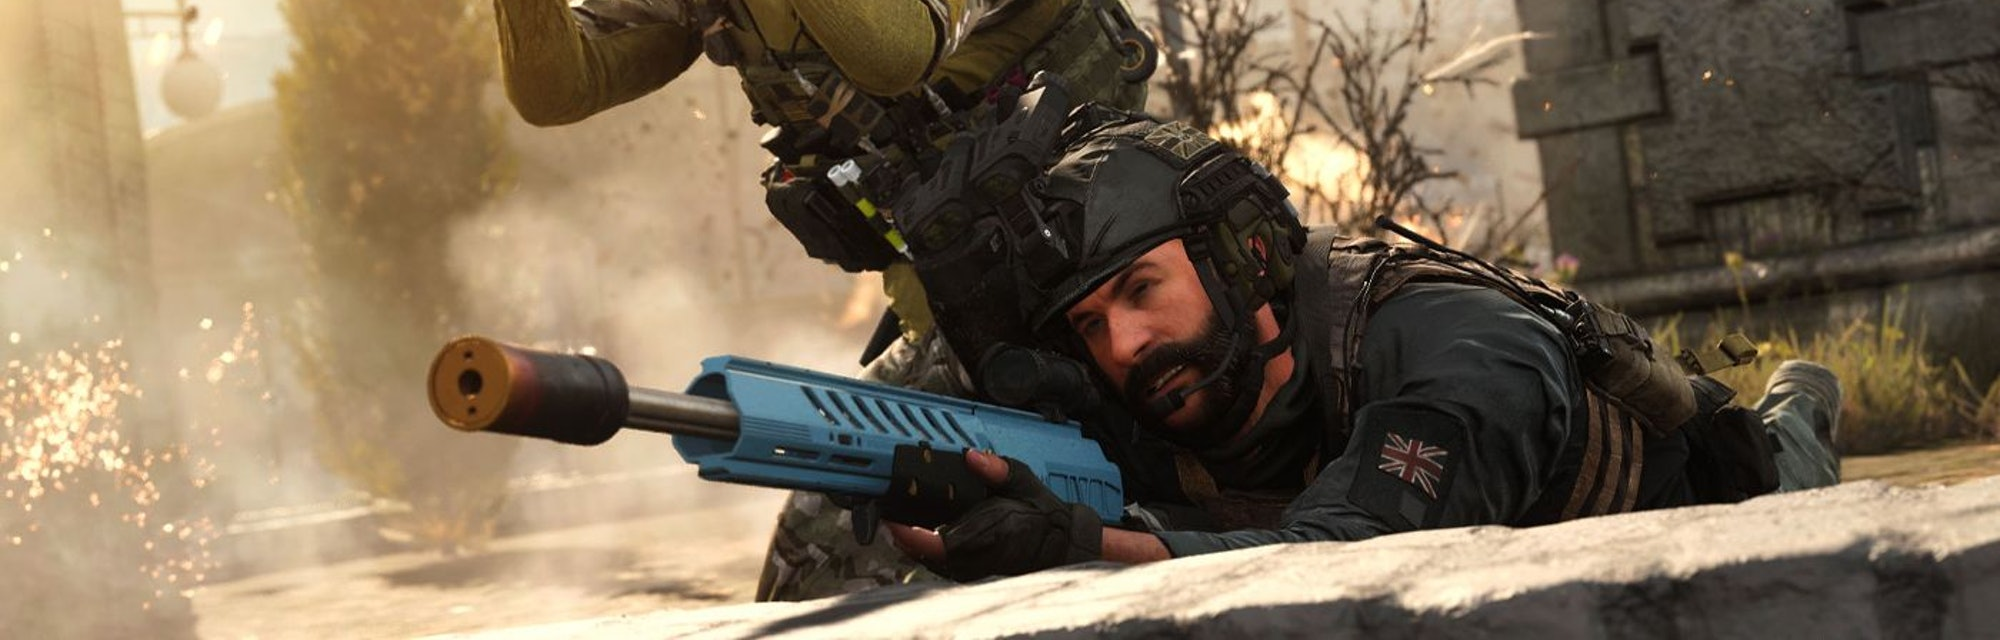 Call Of Duty Warzone Season 5 The 5 Best Guns To Use In Battle Royale